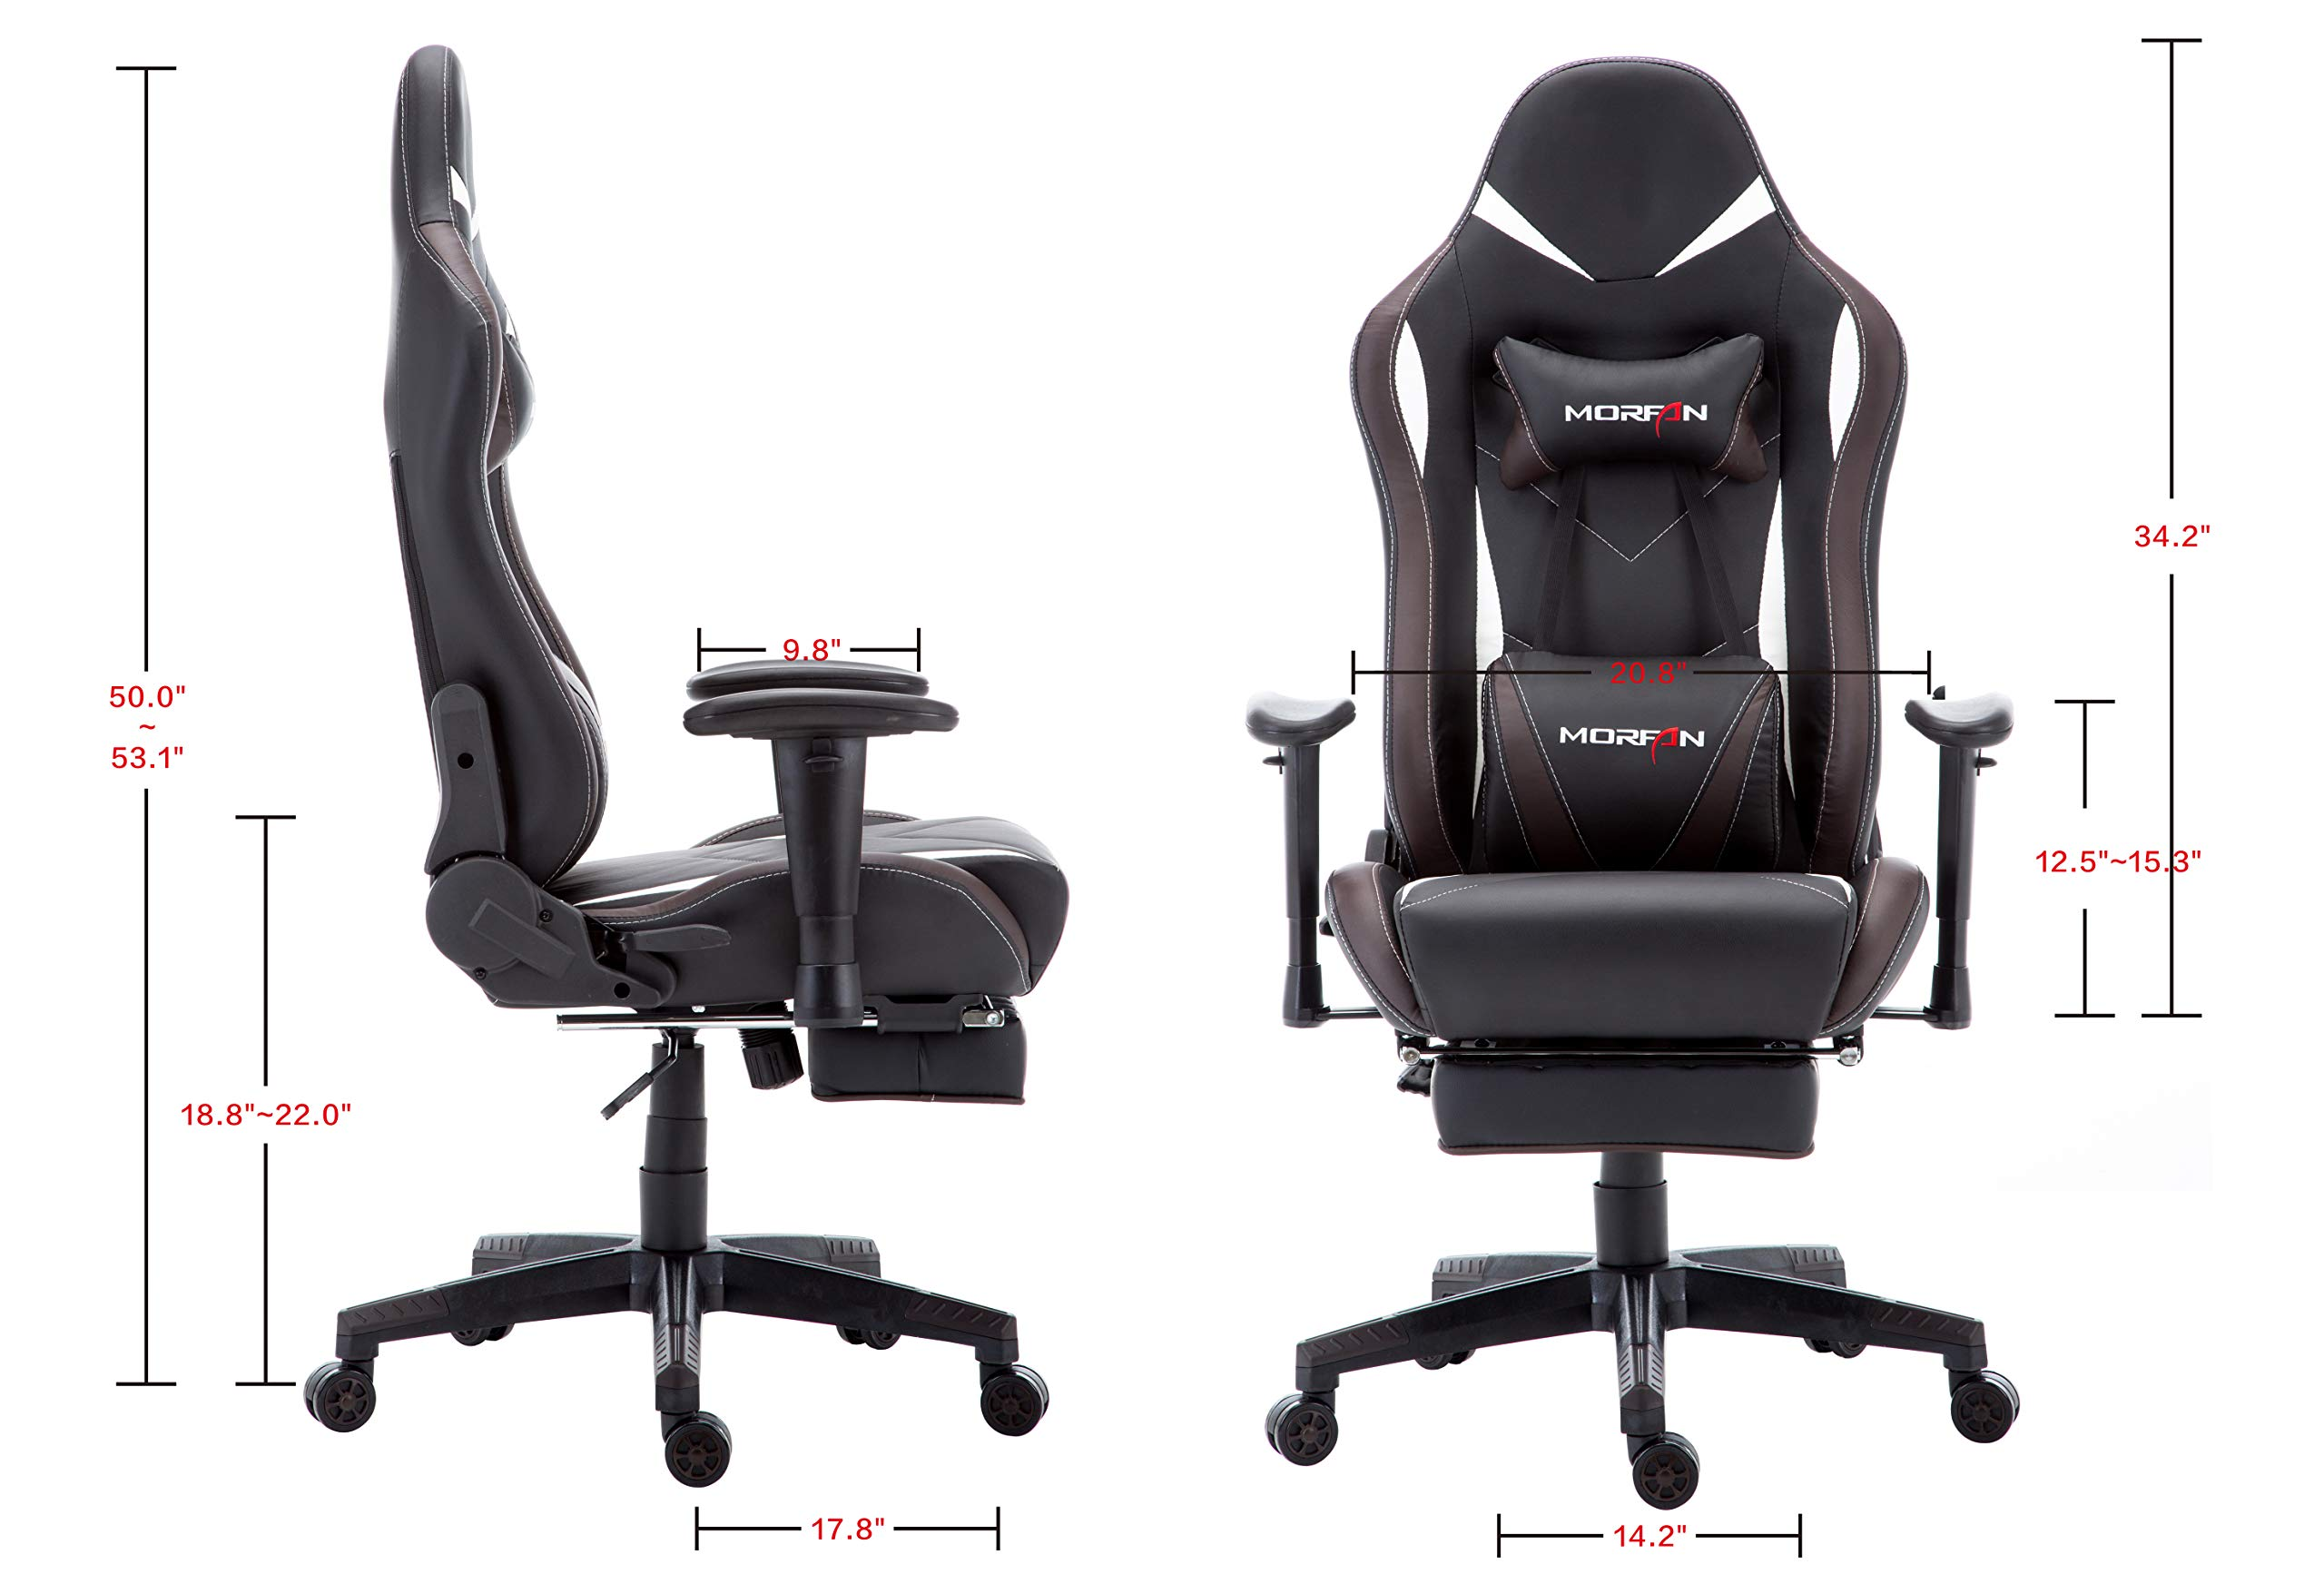 Morfan Gaming Chair Large Size Massage Function Ergonomic Racing Style PC Computer Office Chair with Retractable Footrest & Adjustable Lumbar and Headrest Pillows (Black/Brown) by MORFAN (Image #4)